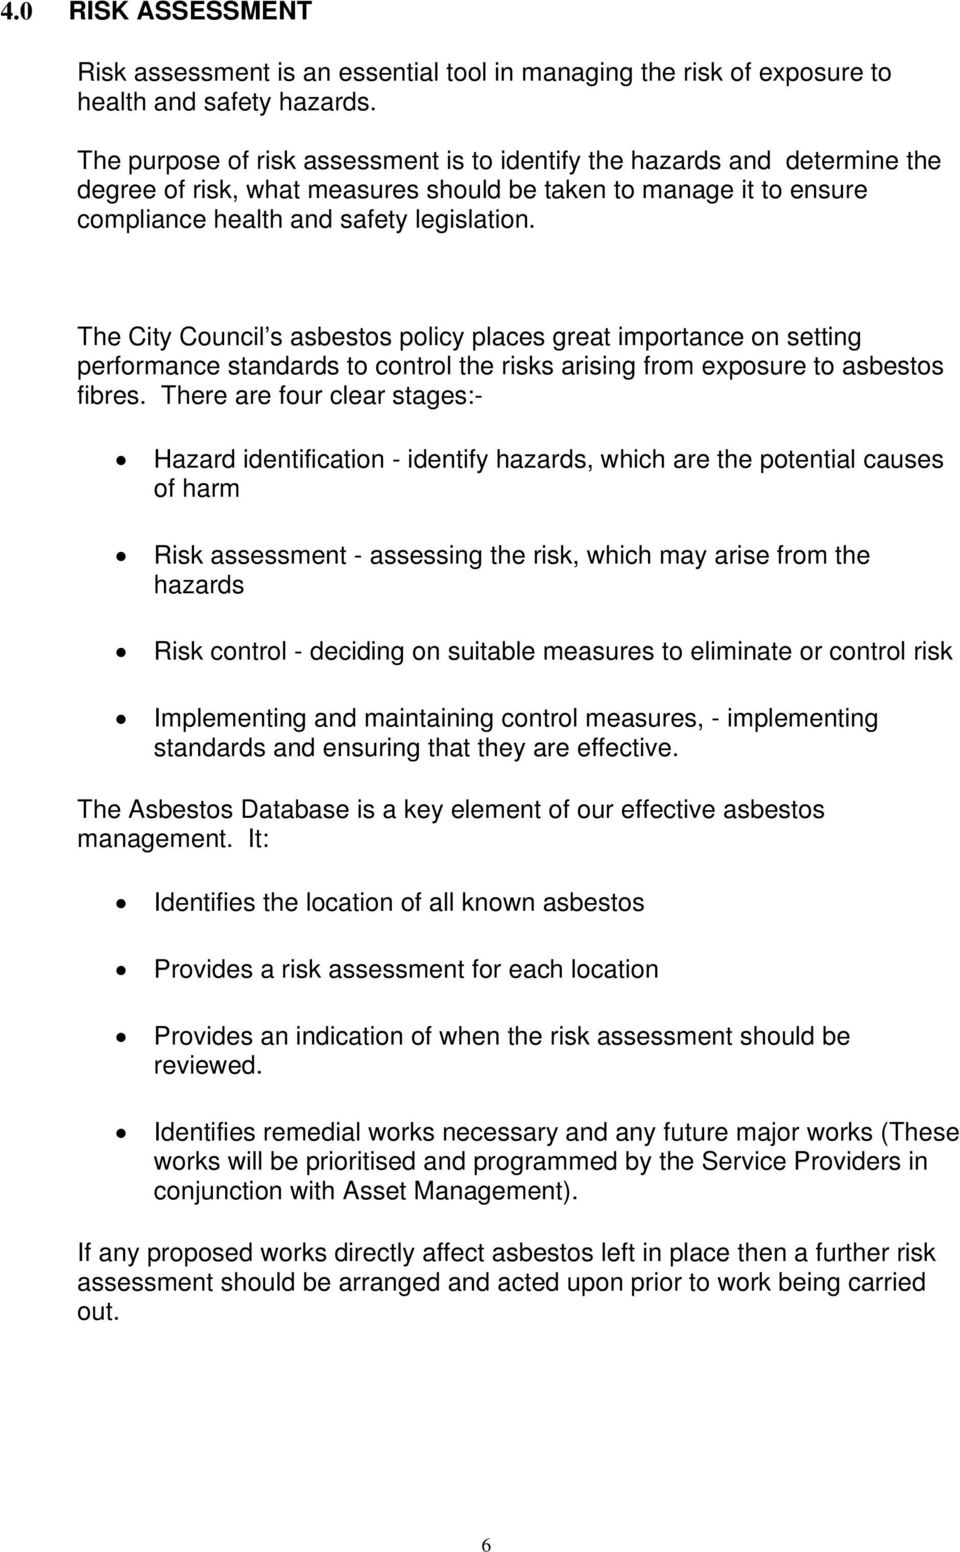 The City Council s asbestos policy places great importance on setting performance standards to control the risks arising from exposure to asbestos fibres.